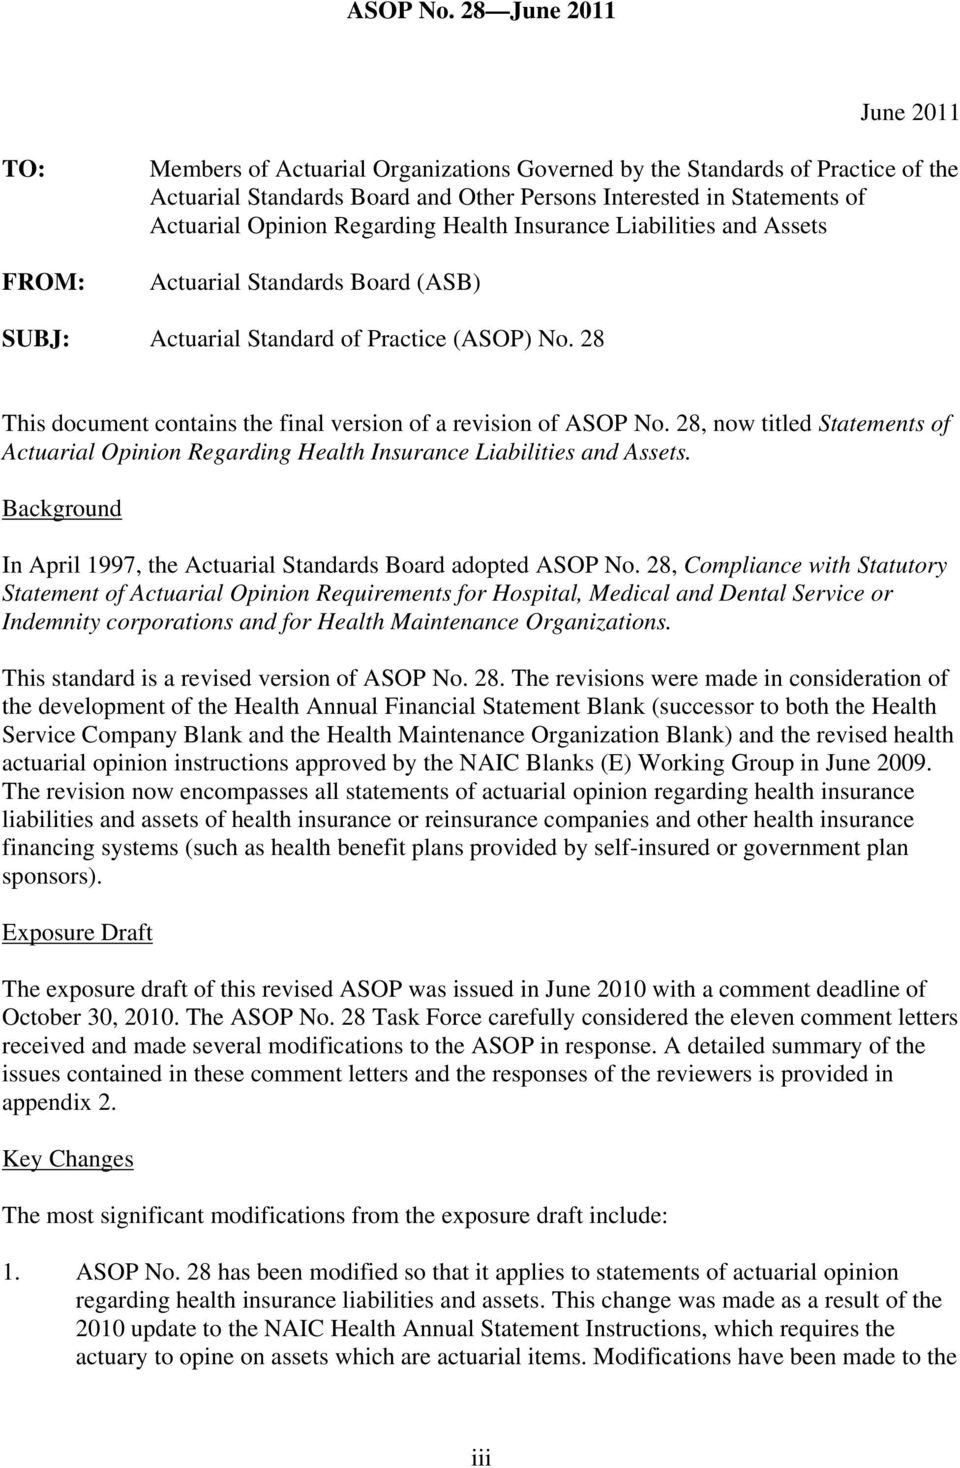 28, now titled Statements of Actuarial Opinion Regarding Health Insurance Liabilities and Assets. Background In April 1997, the Actuarial Standards Board adopted ASOP No.